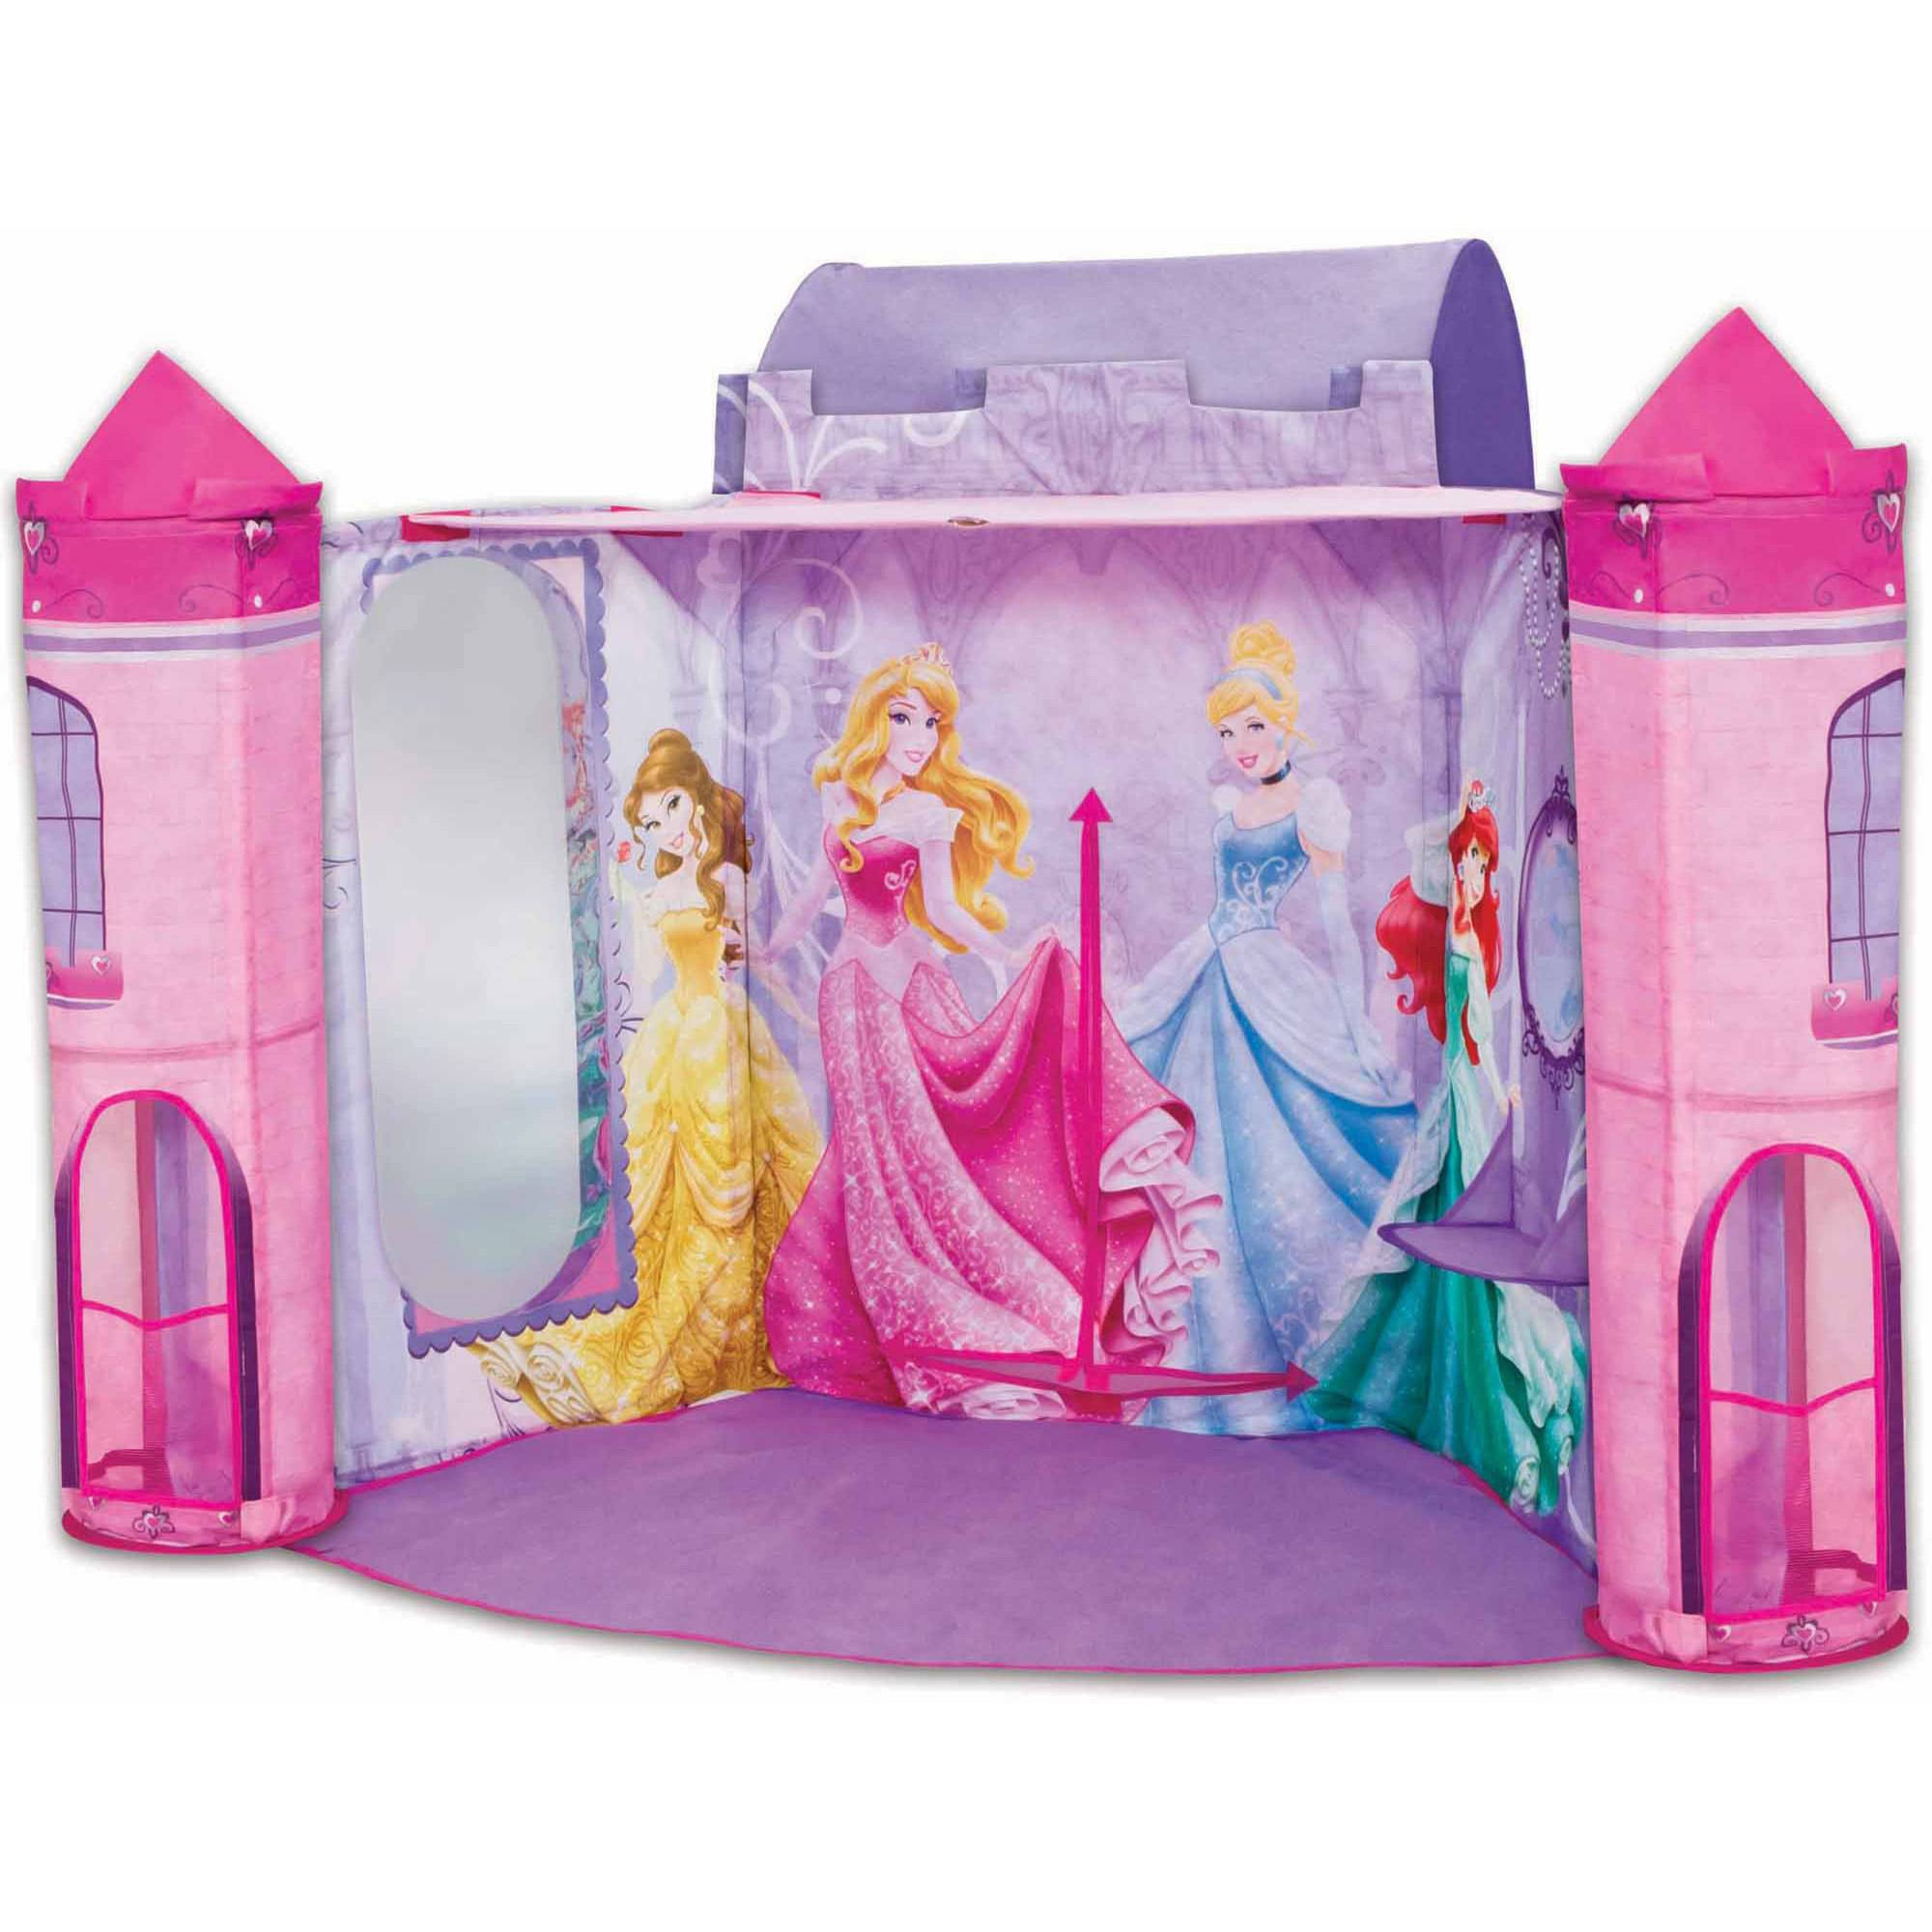 Playz Ball Pit Princess Castle Play Tents For S W Glow In The Dark Stars Pop Up Children Tent Indoor Outdoor Use Beautiful Playland